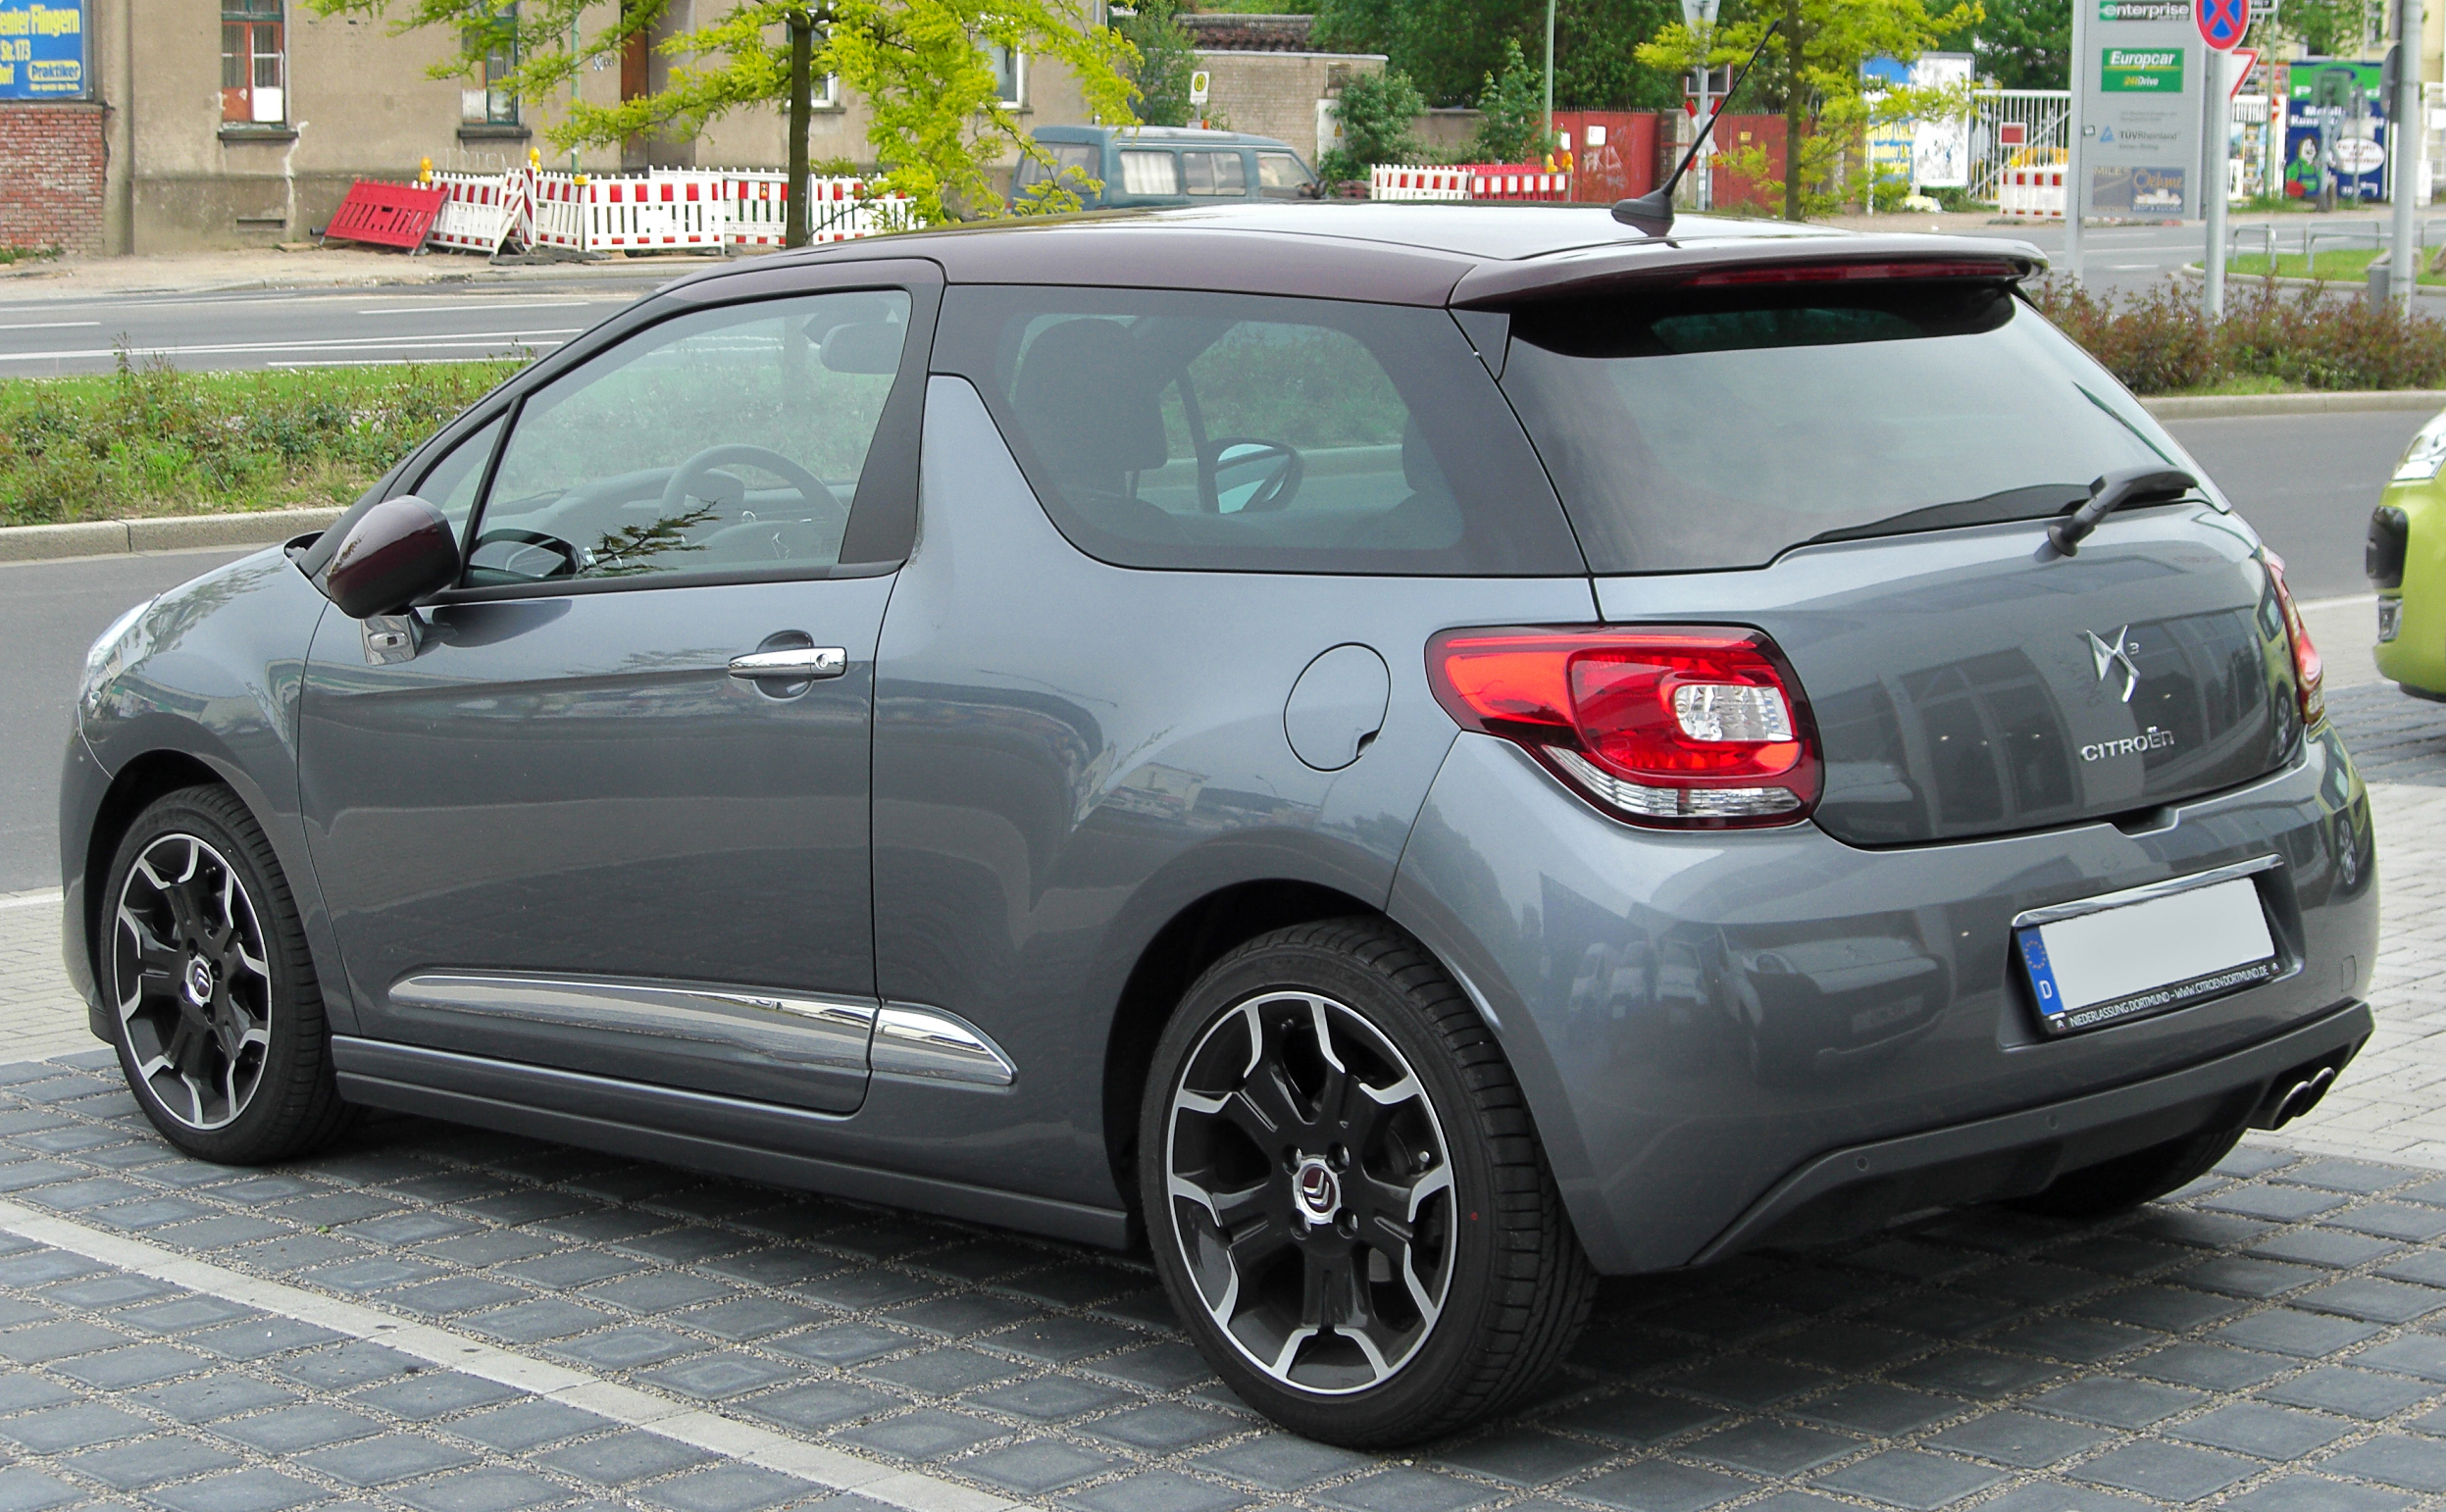 citroen ds3 thp 150-pic. 3